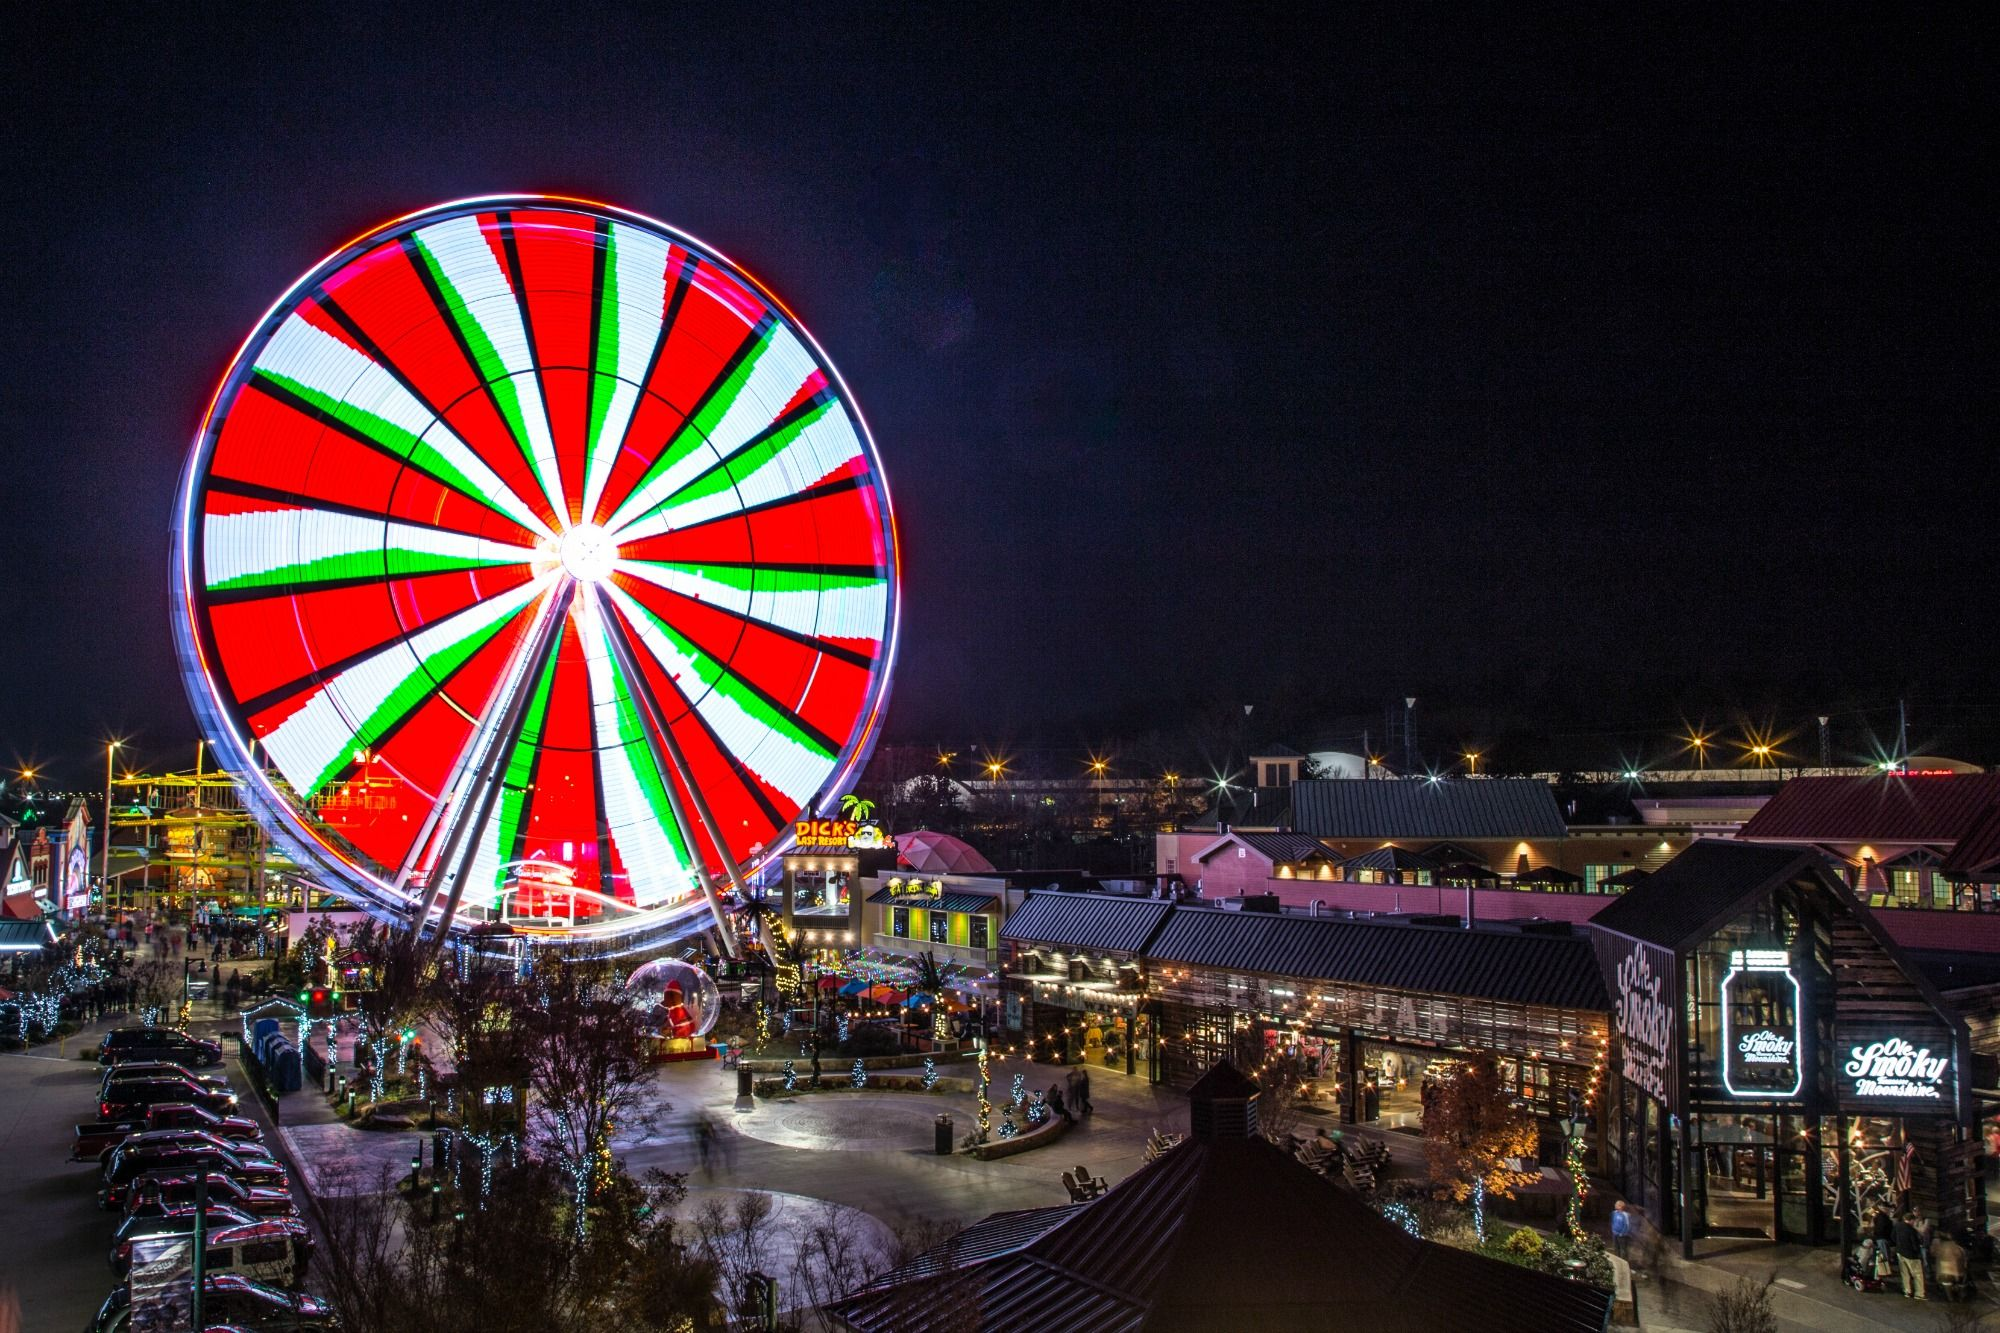 Visit The Great Smoky Mountain Wheel at The Island in Pigeon Forge this Christmas | Christmas ...